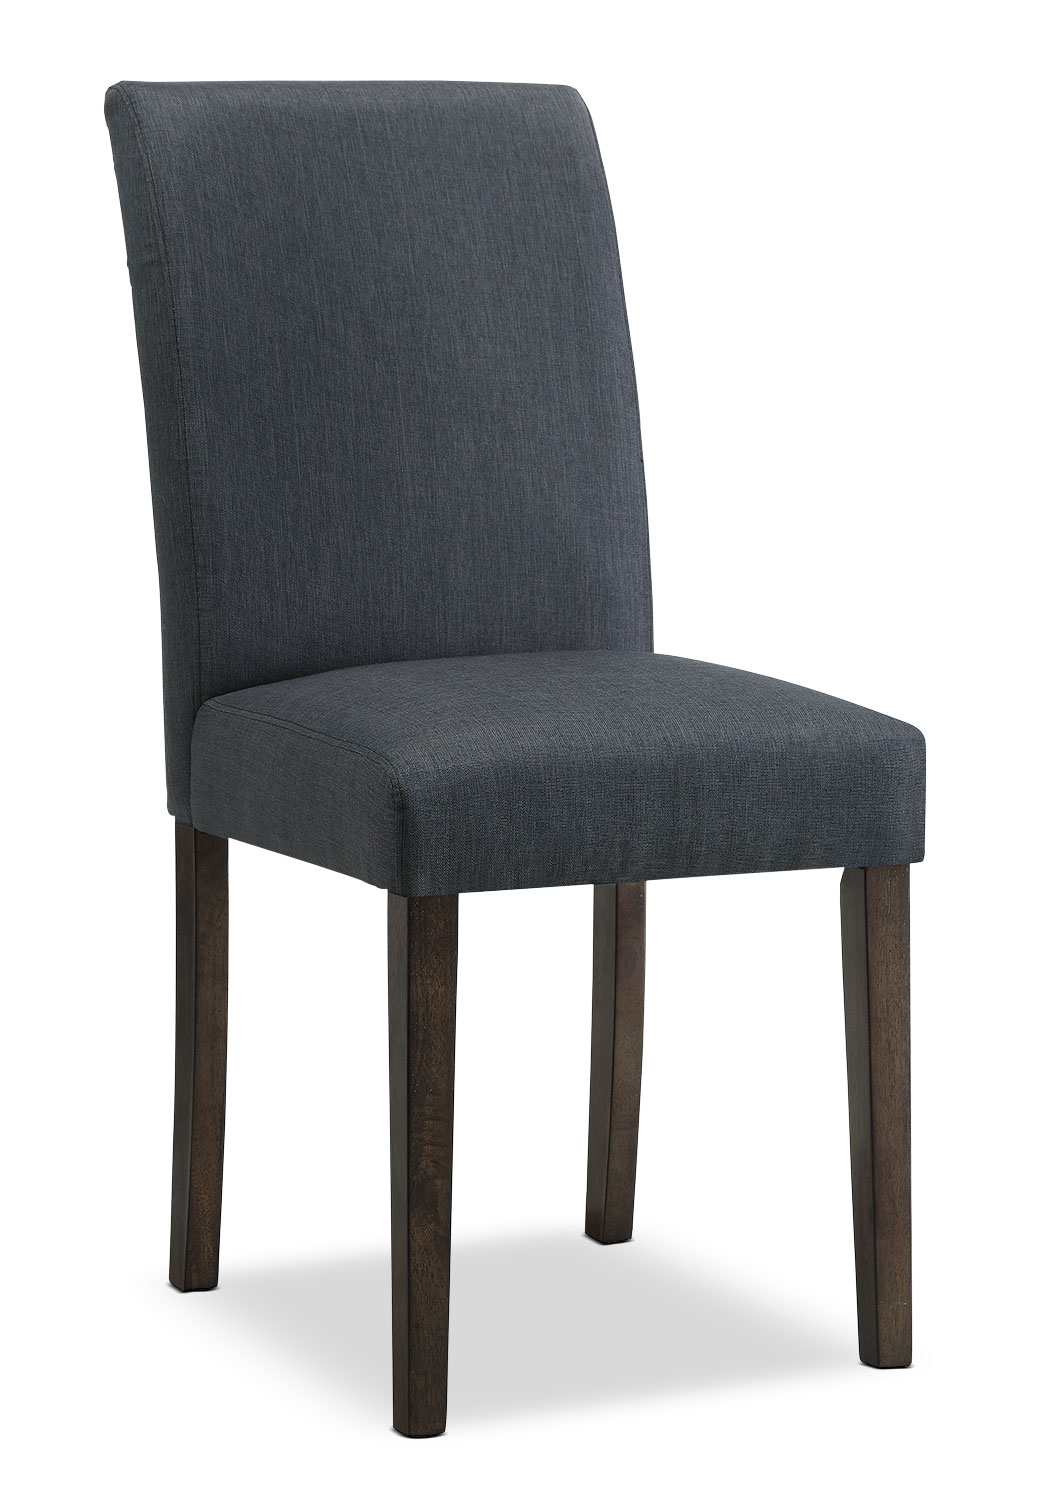 Dining Room Furniture - Skye Dining Chair – Charcoal